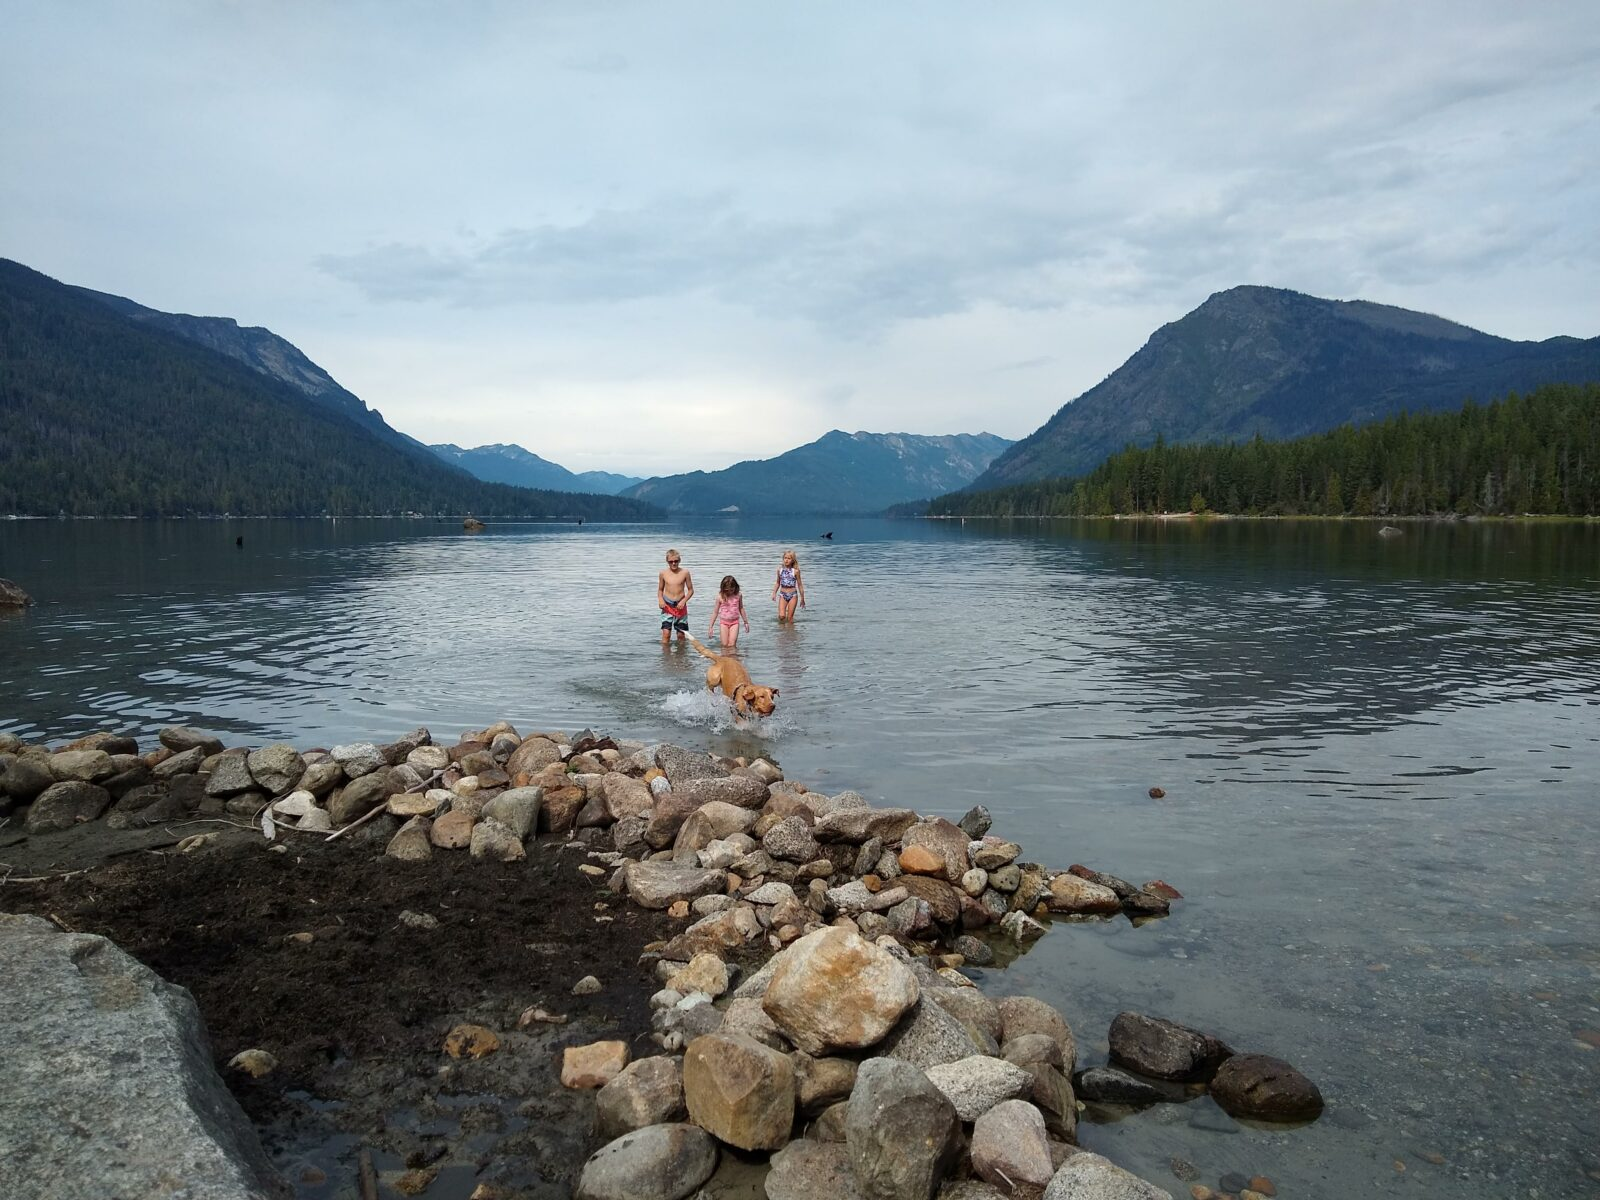 kids and a dog wade in the water of a lake. There are rocks on the beach and forested hillsides in the background